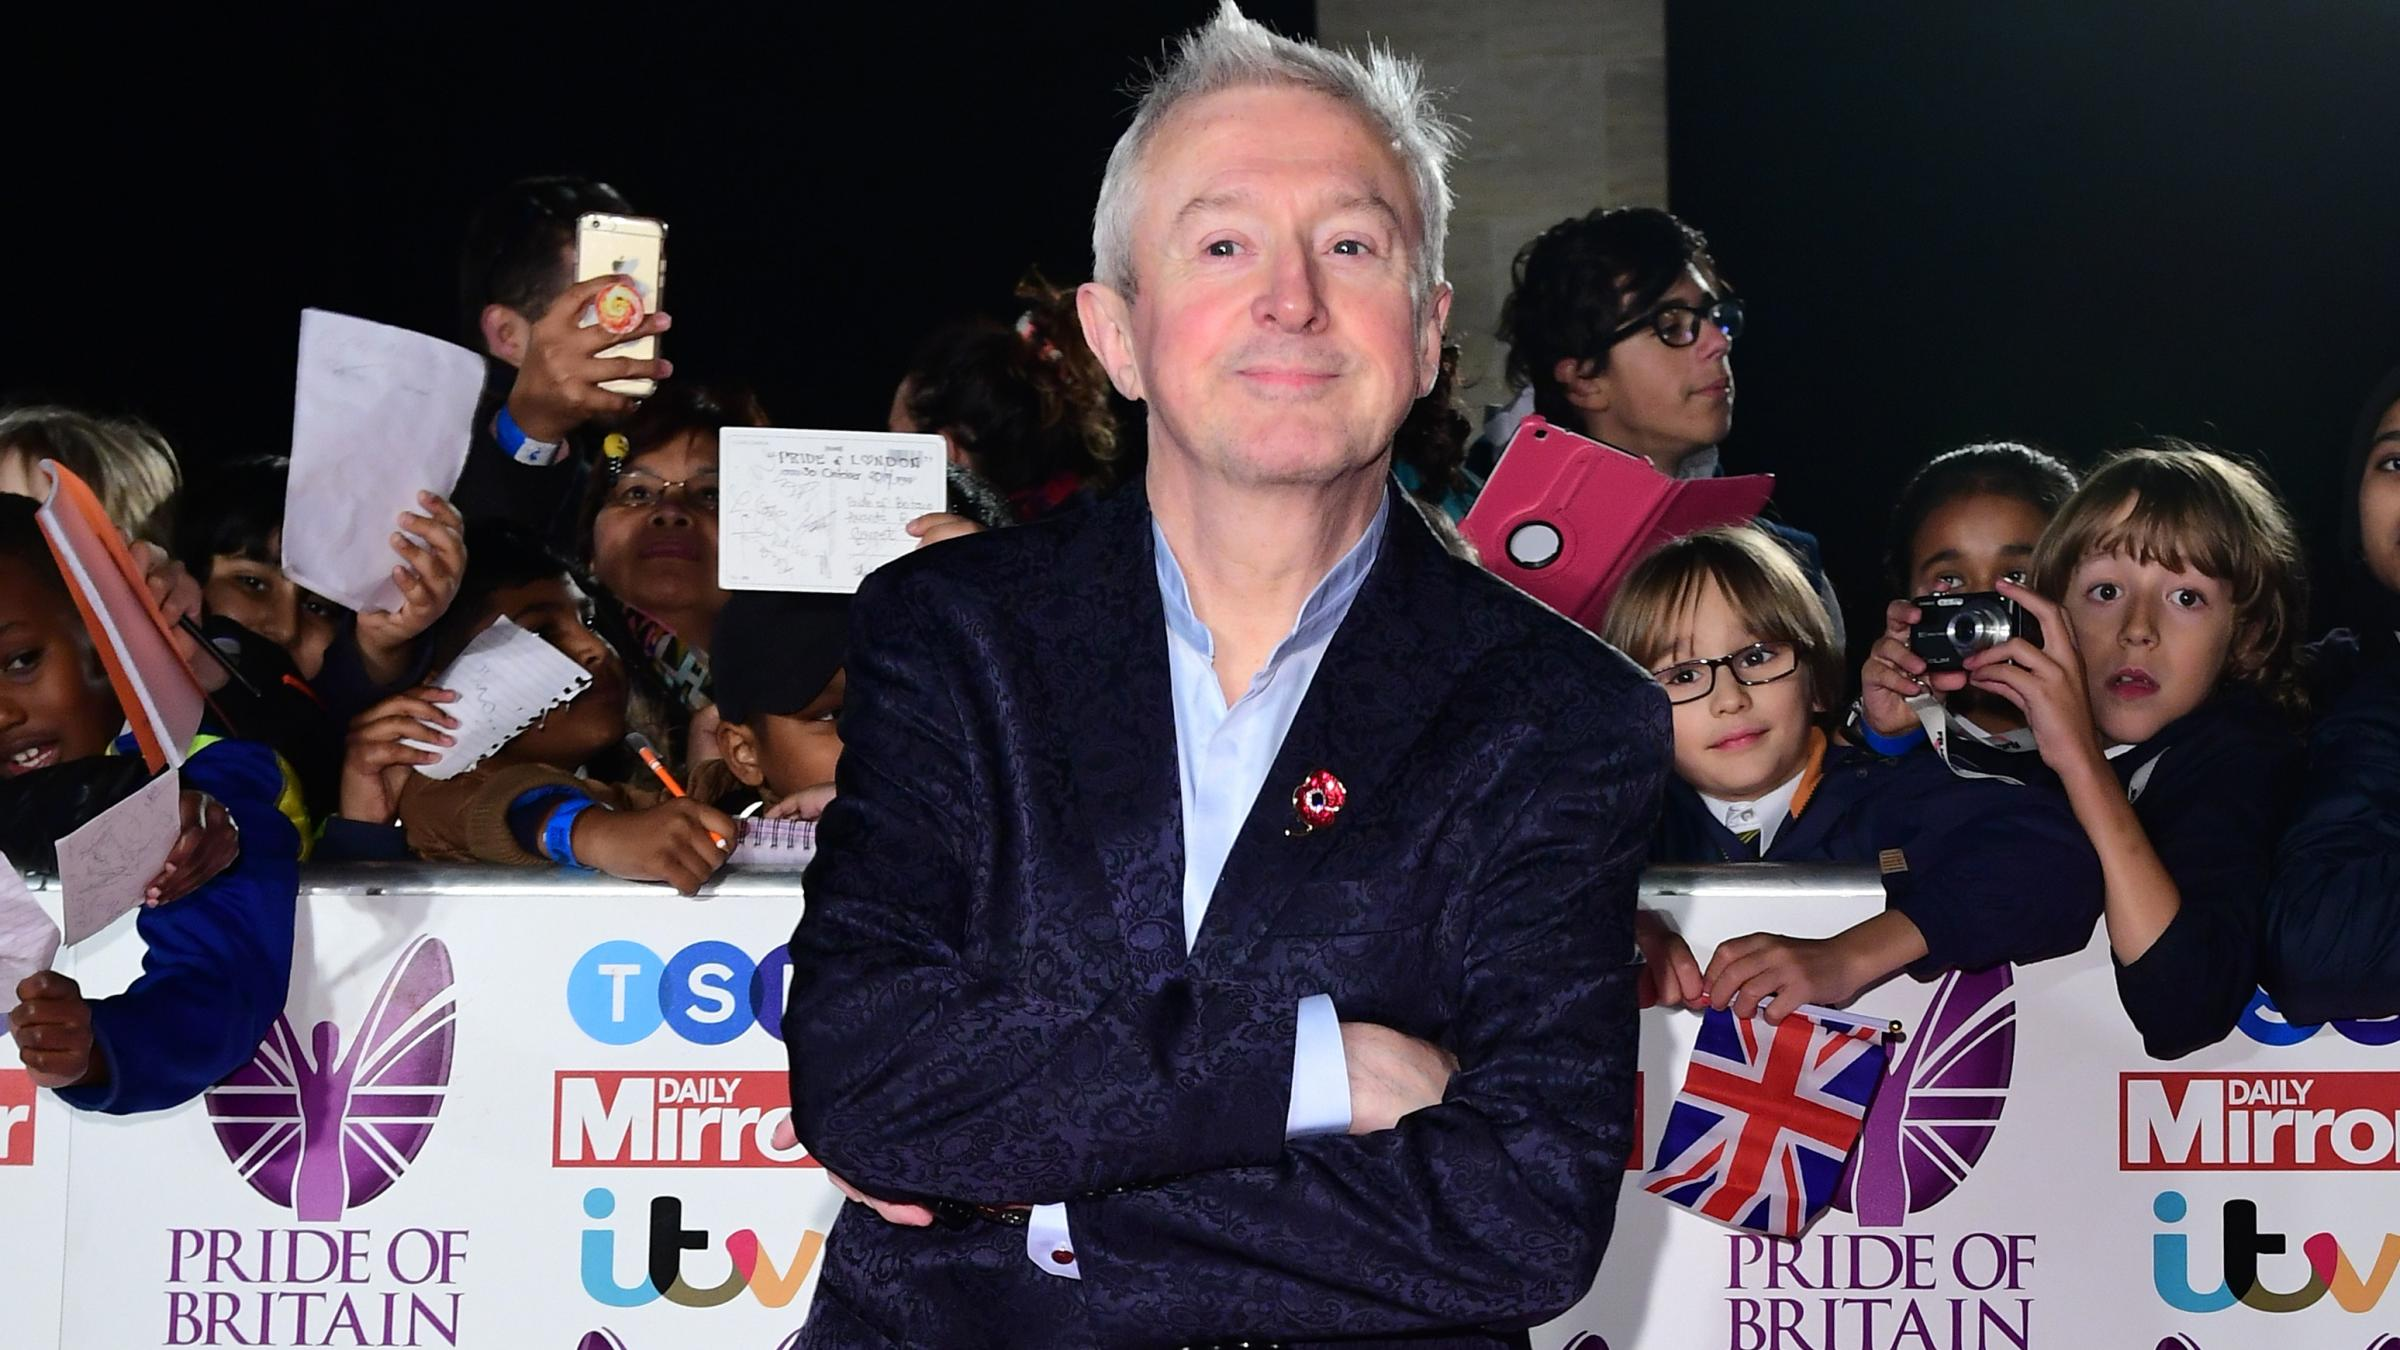 Louis Walsh leaves The X Factor as show ushers in new era